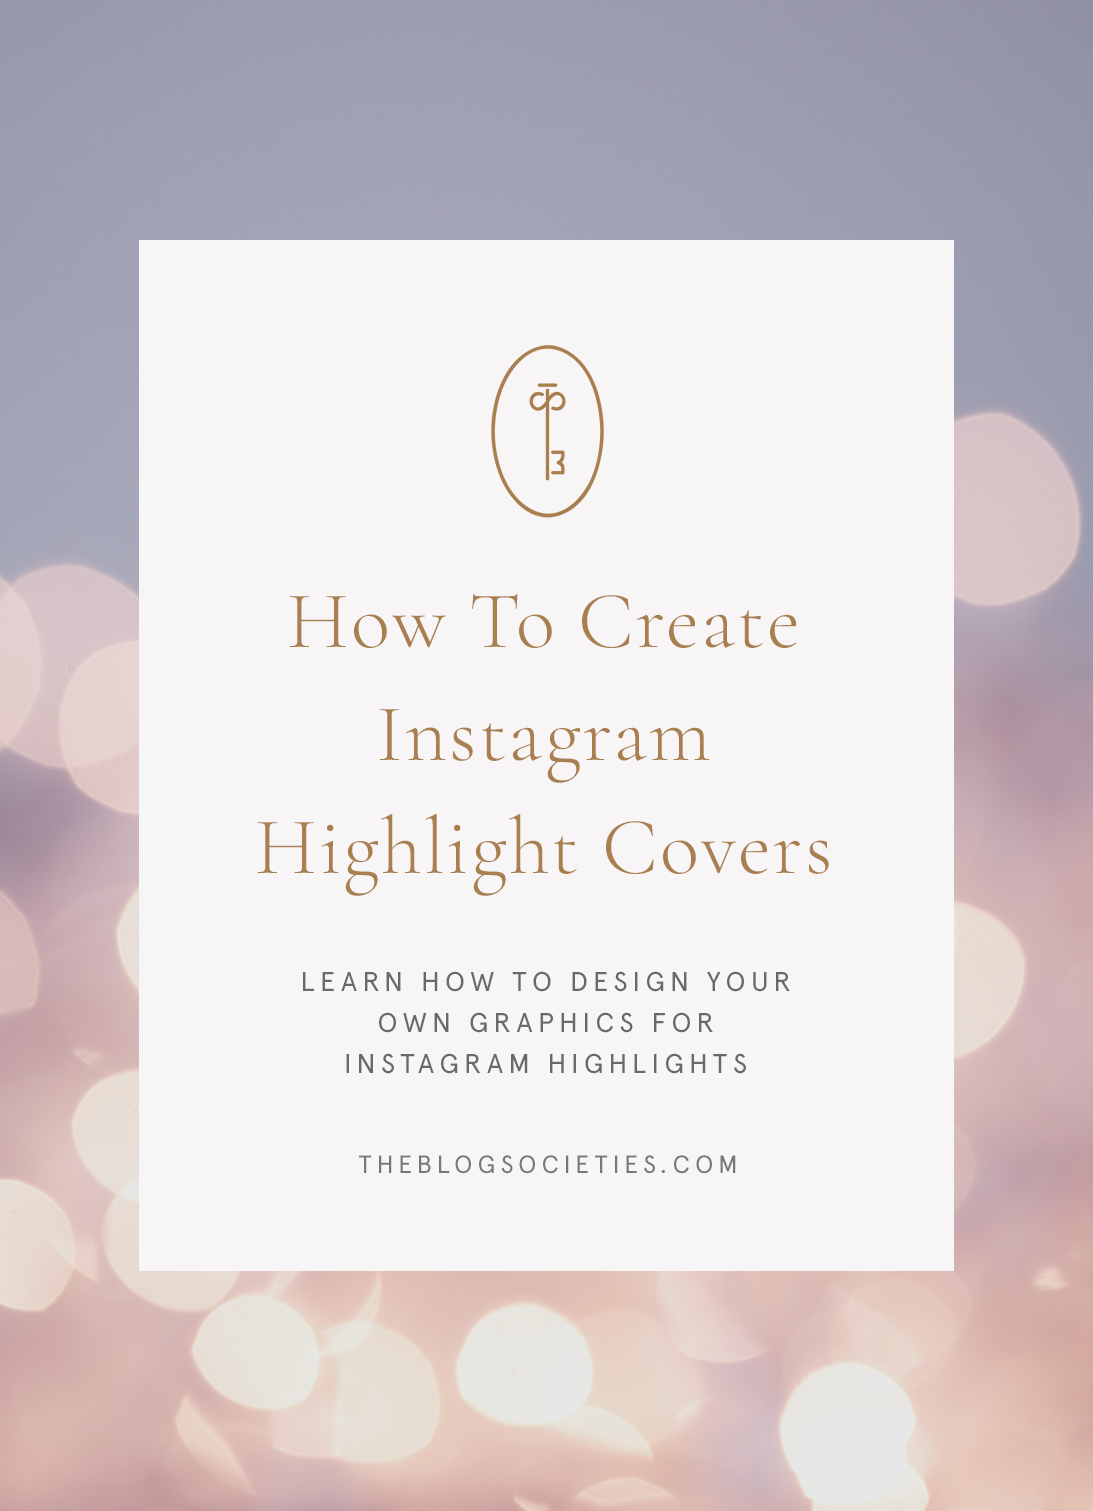 How To Make Instagram Highlight Covers - The Blog Societies